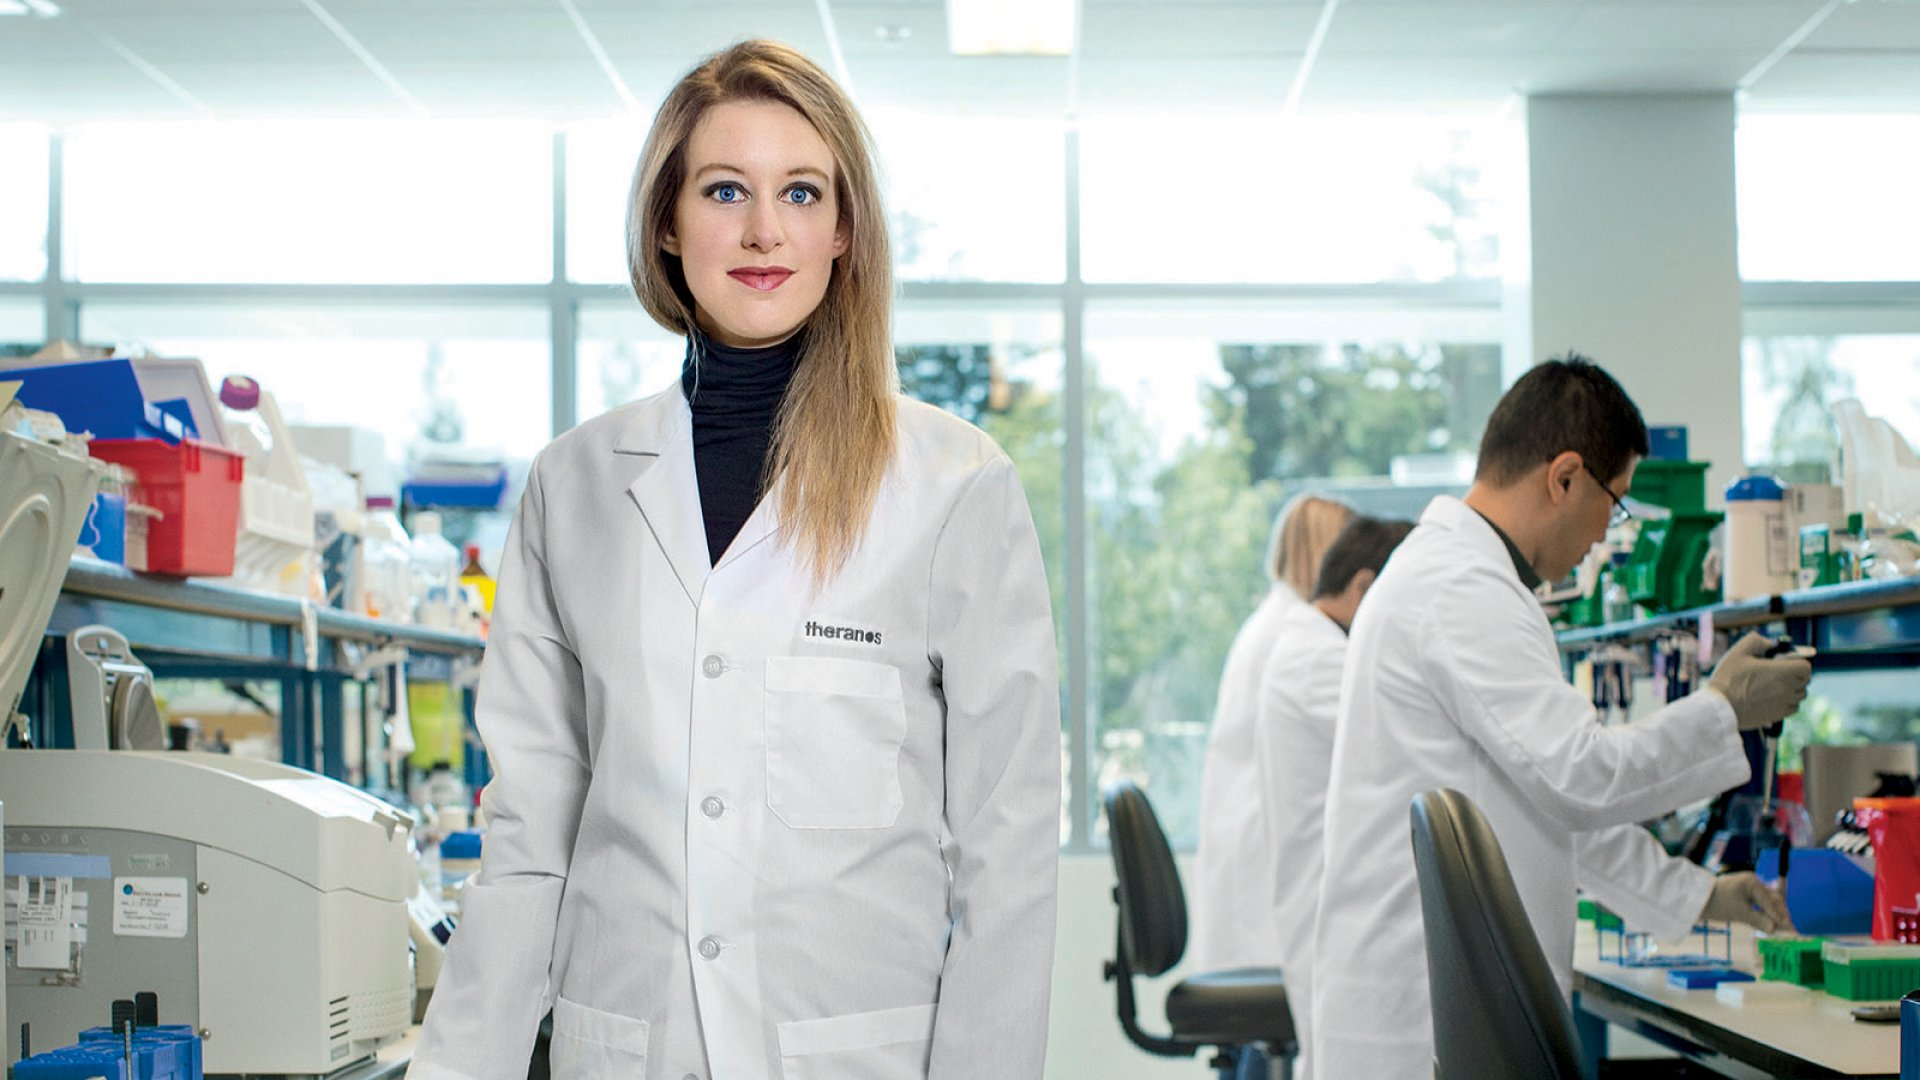 Theranos was in stealth mode for 10 years—a third of Elizabeth Holmes's life. Yet it's still early days for her $10 billion lab test company.